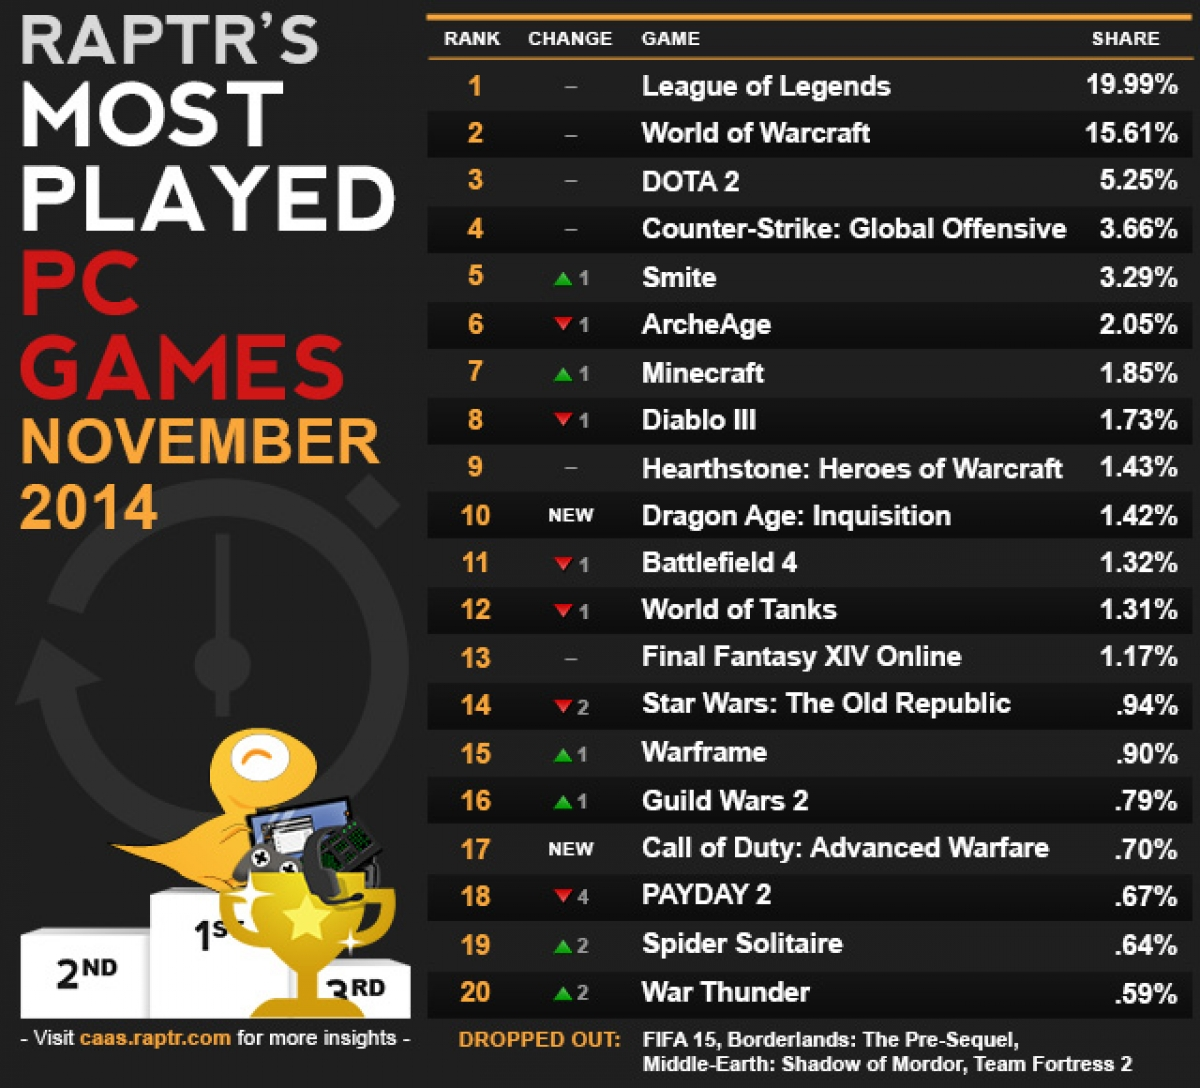 Most Played PC Games in November - LoL Plummets, WoW Climbs